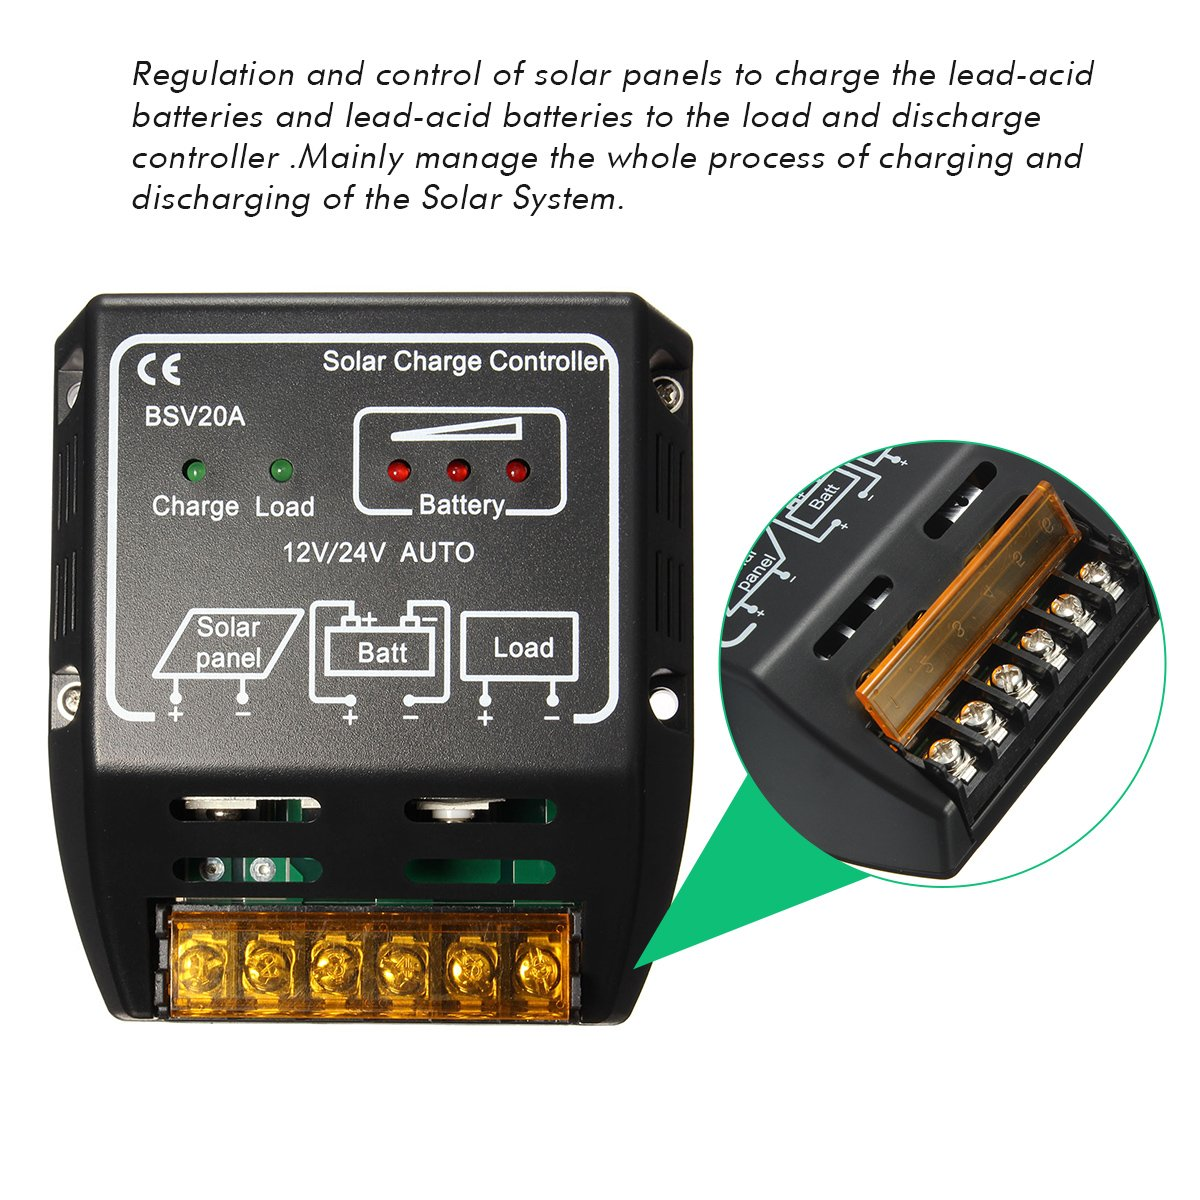 Mohoo 20a 12v 24v Solar Charge Controller Control Pwm 10a 12v24v Automatic Art Of Circuits Regulator Panel Battery Safe Protection Garden Outdoor